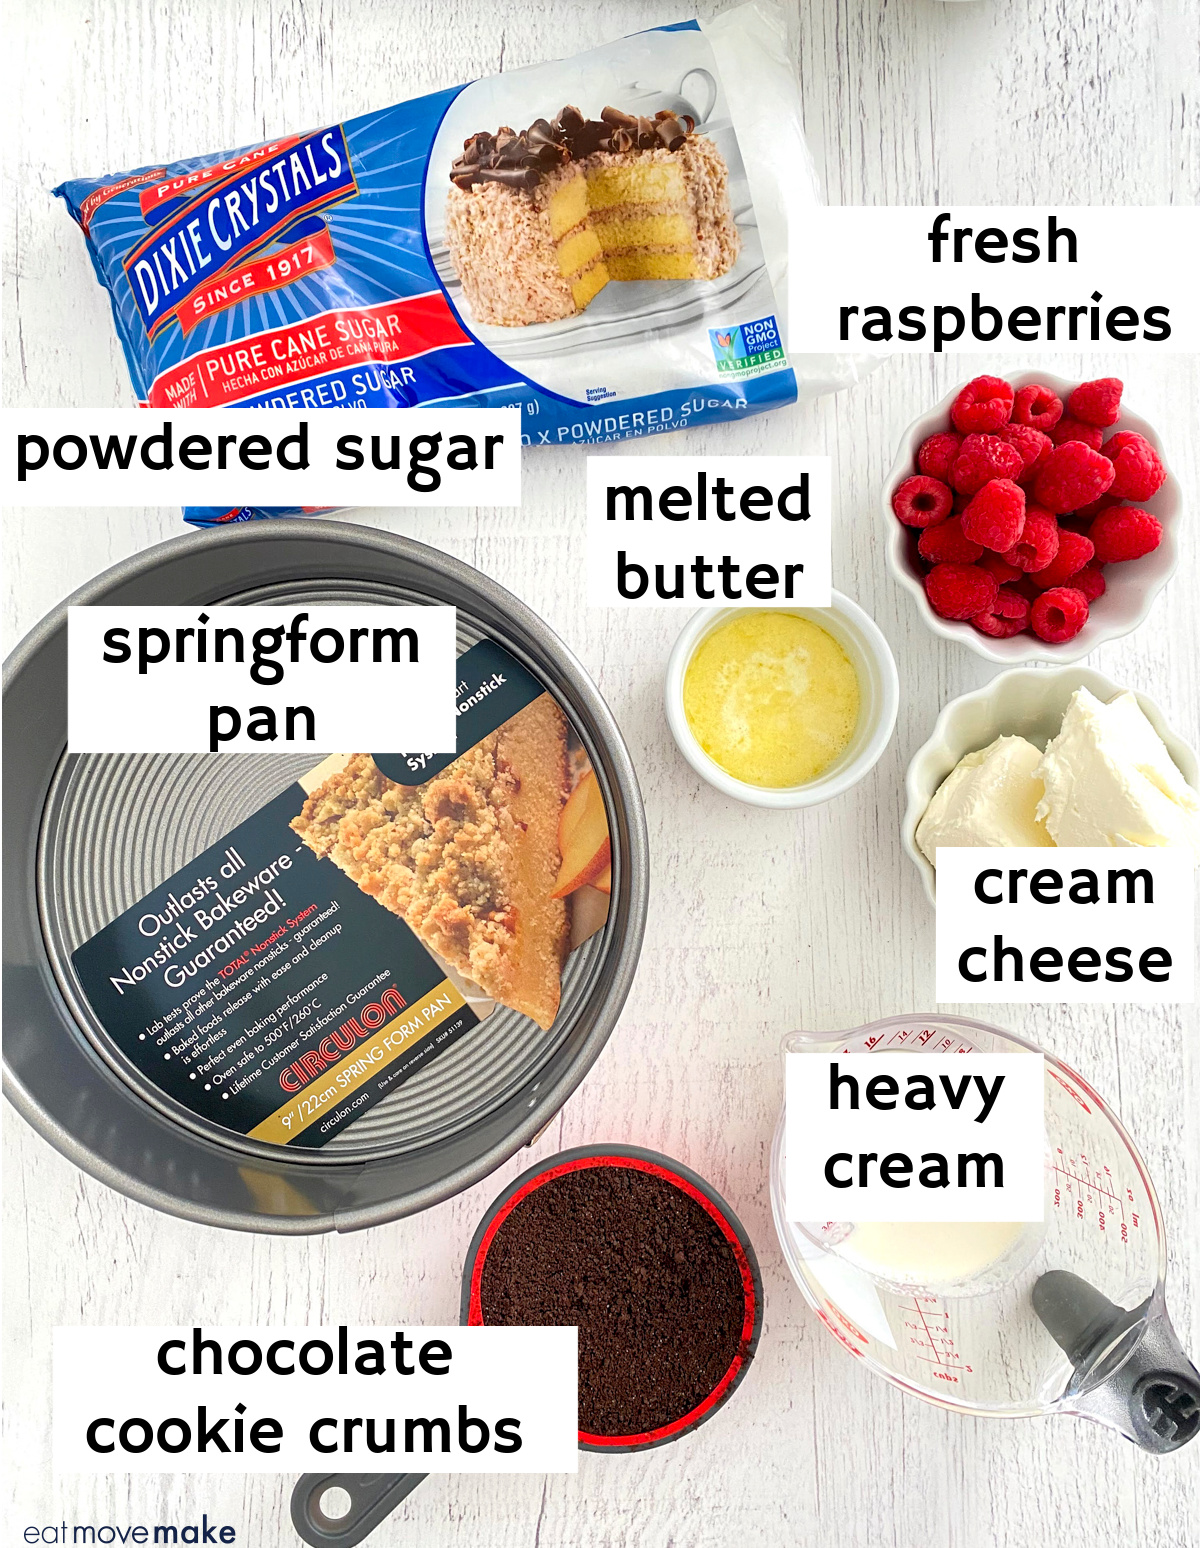 labeled ingredients with Dixie Crystals and Circulon